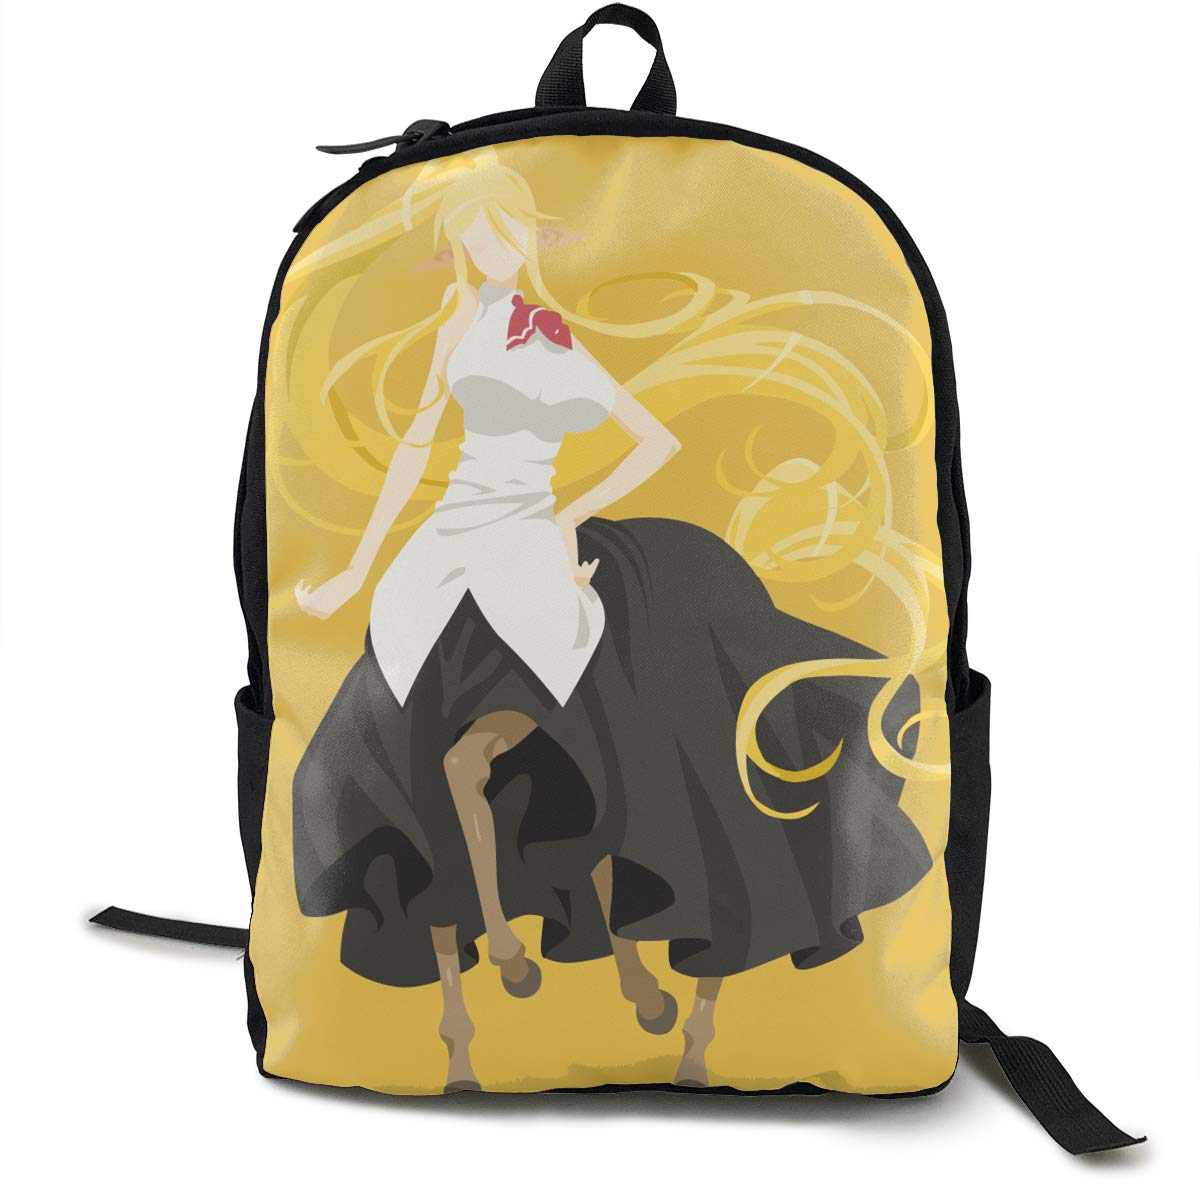 reputable site bdec9 04e42 Sacs à dos loisir MGTXL Sac à Dos Personnalisable Horse Girl Stylish School